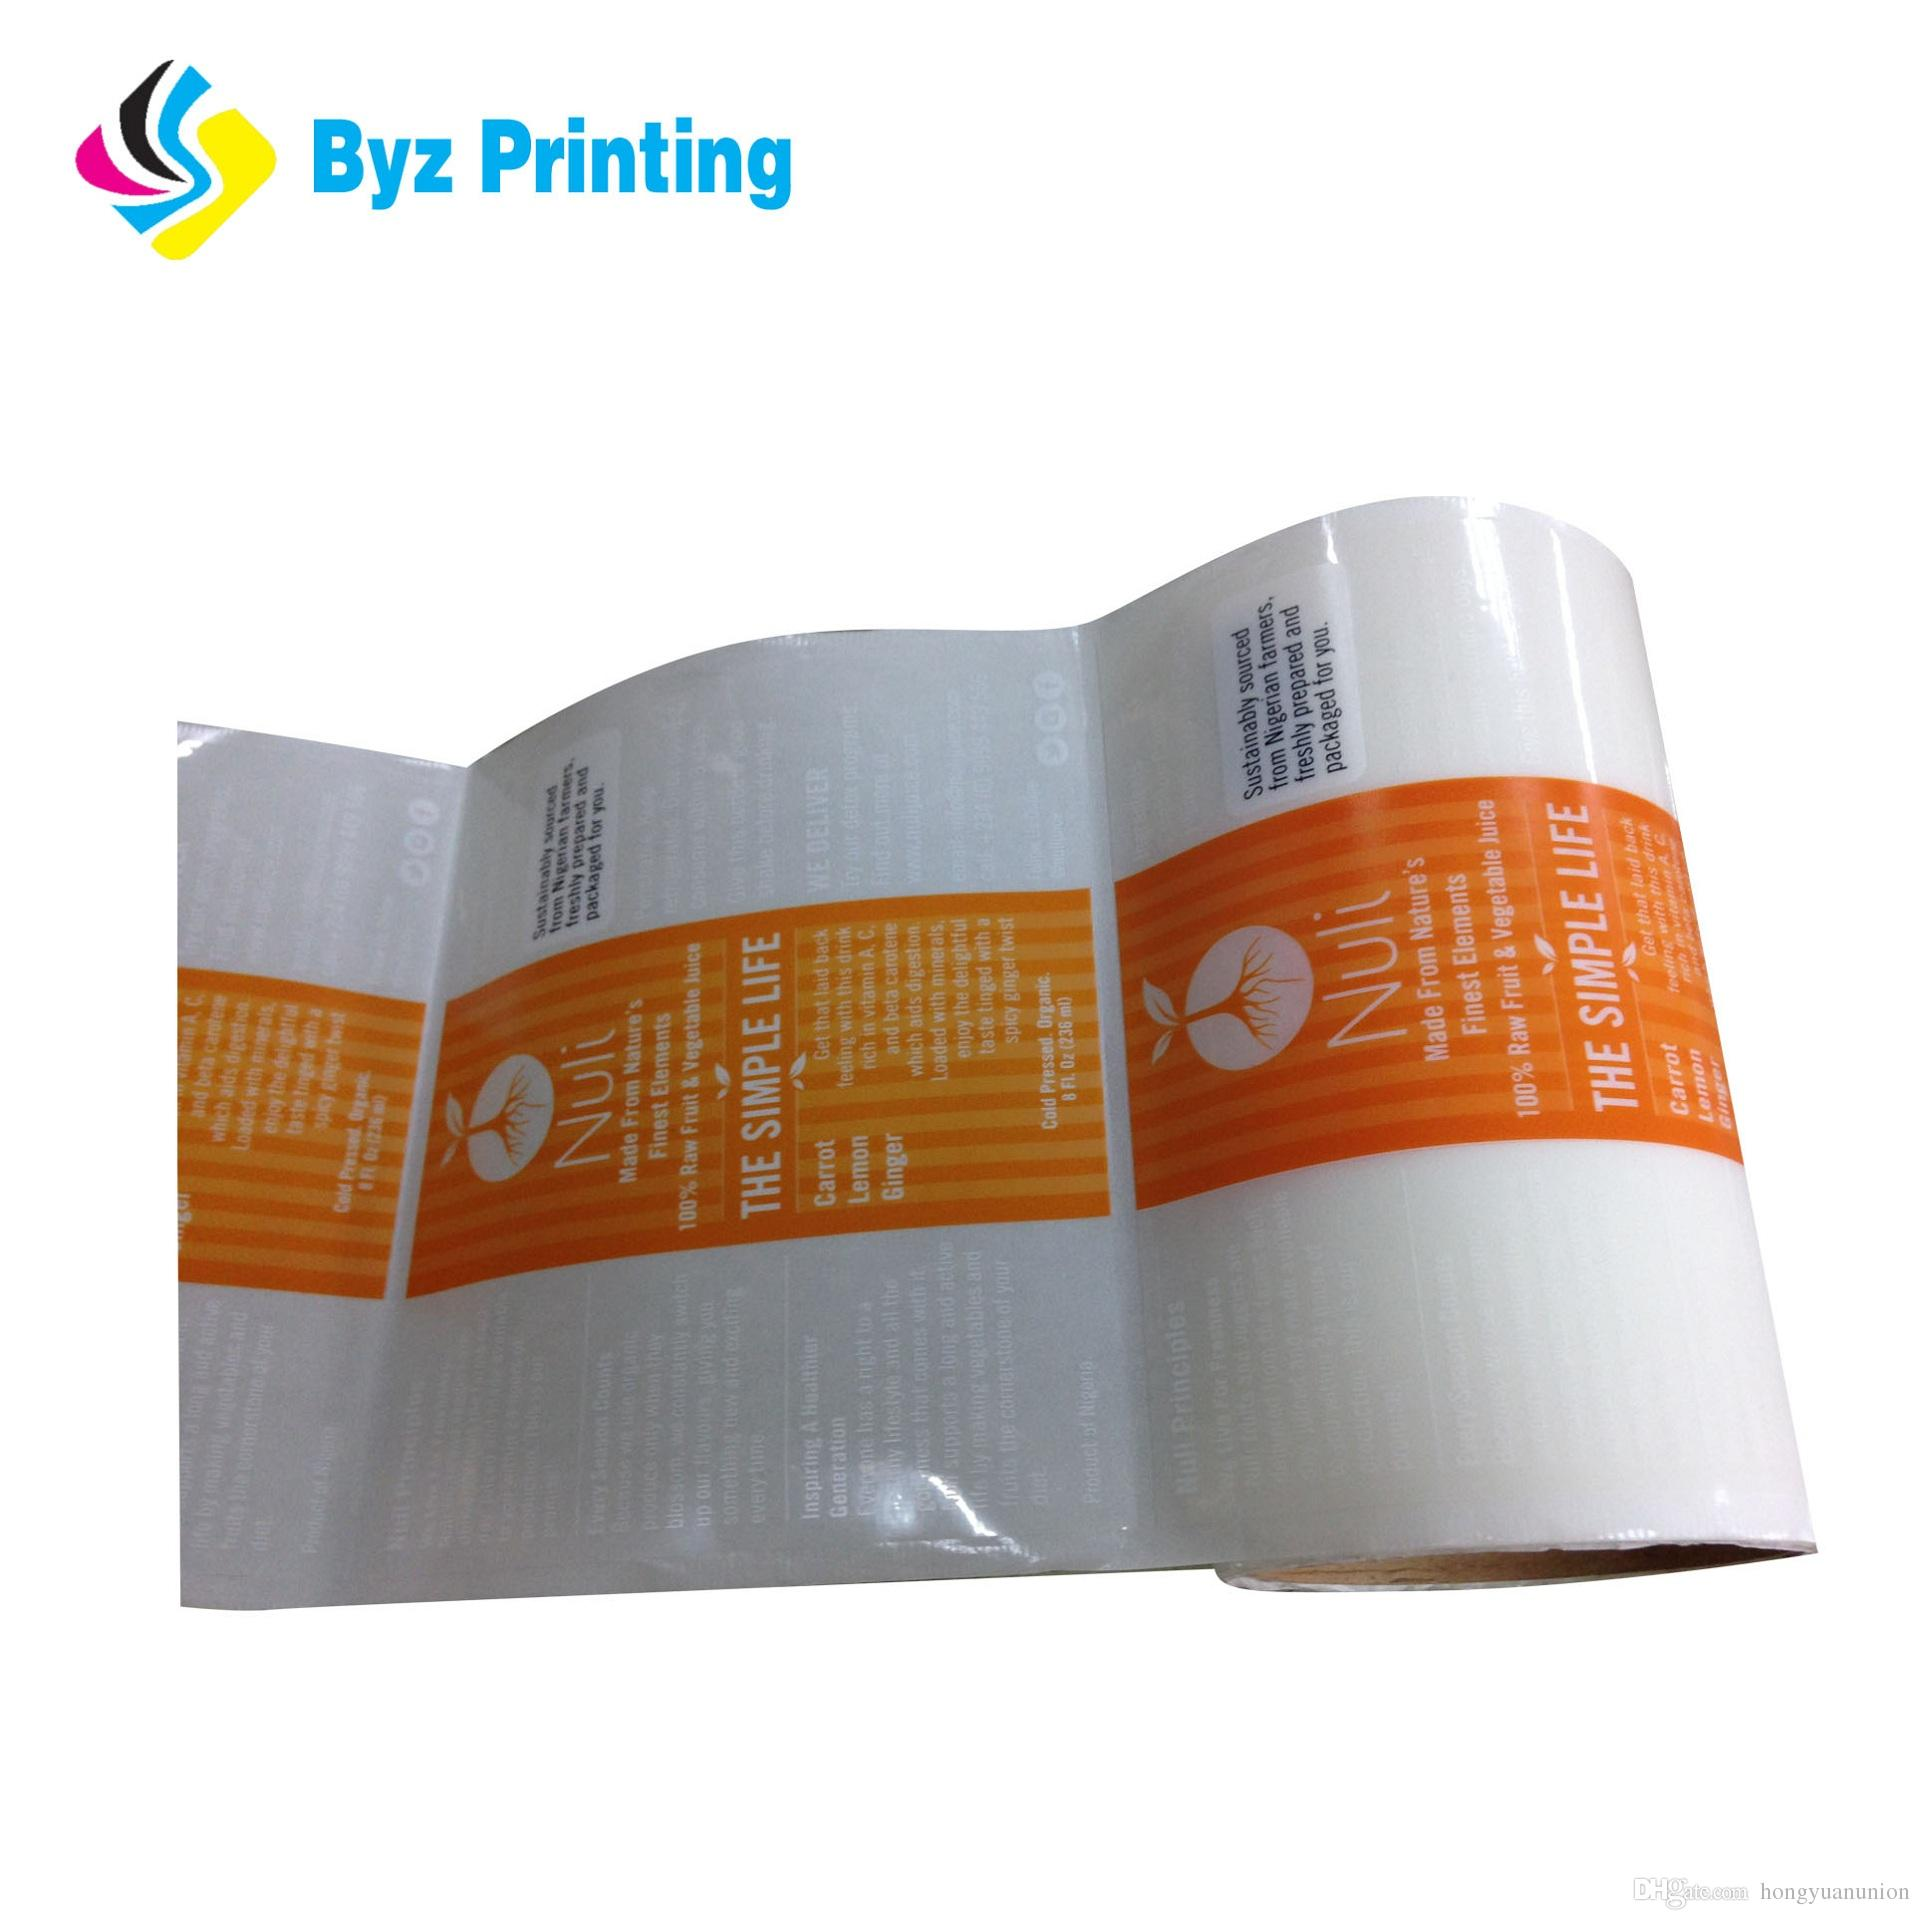 2019 best price custom self adhesive transparent packaging sticker printing waterproof vinyl label with glossy lamination wholesale from hongyuanunion